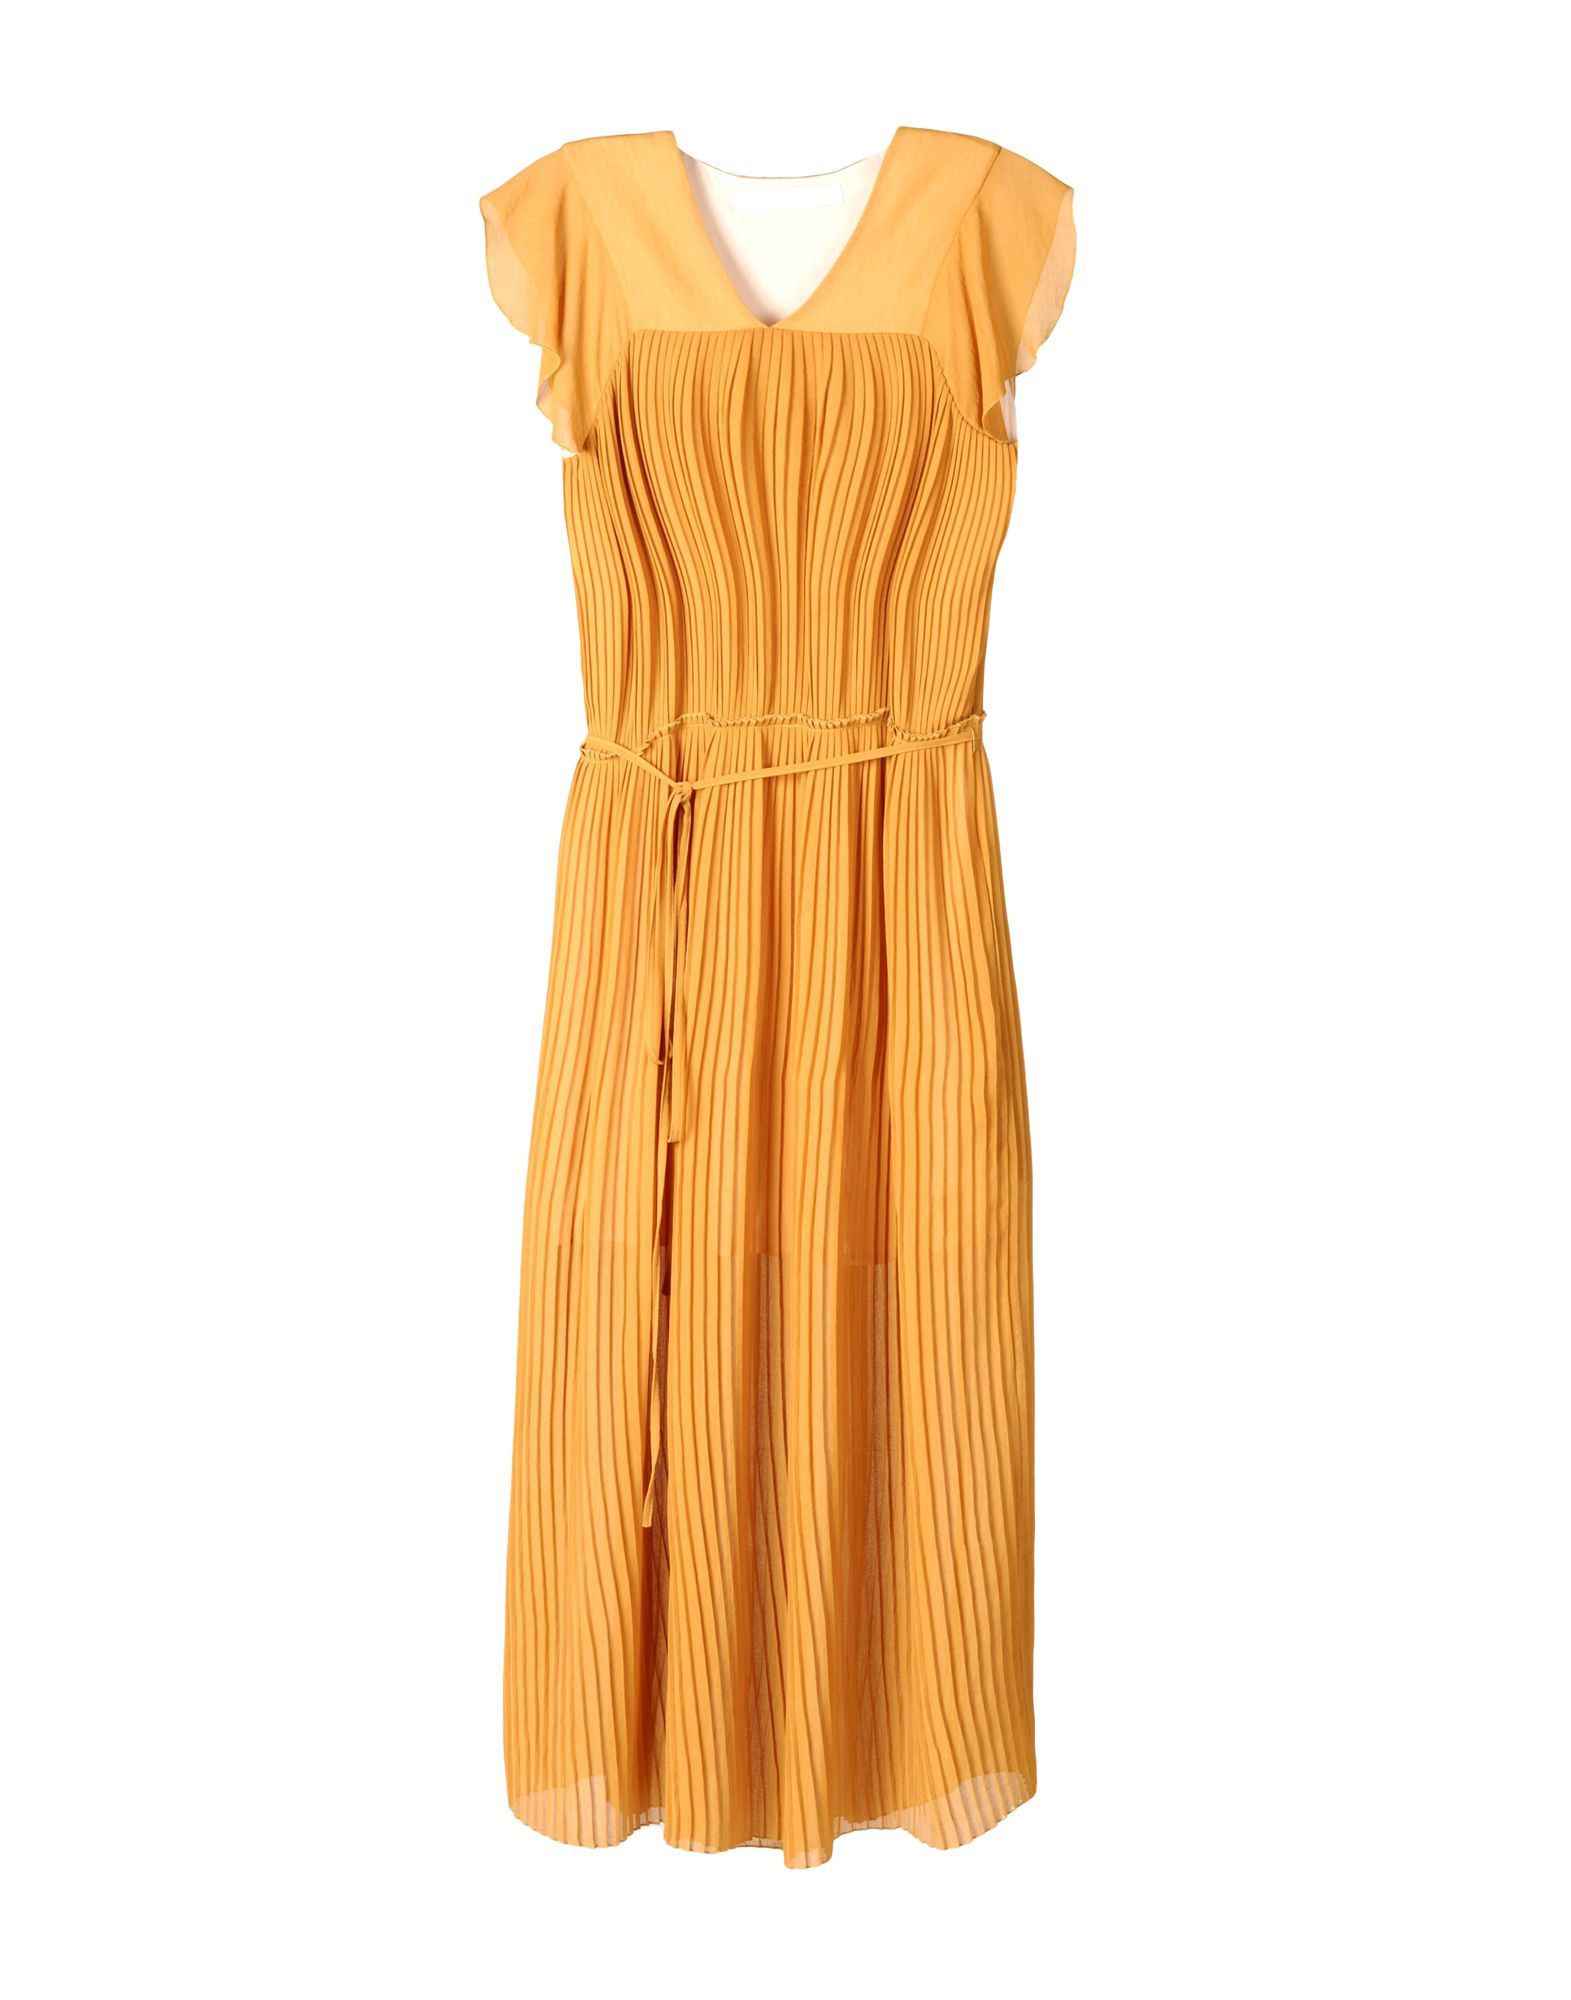 SEE BY CHLOÉ Long dresses